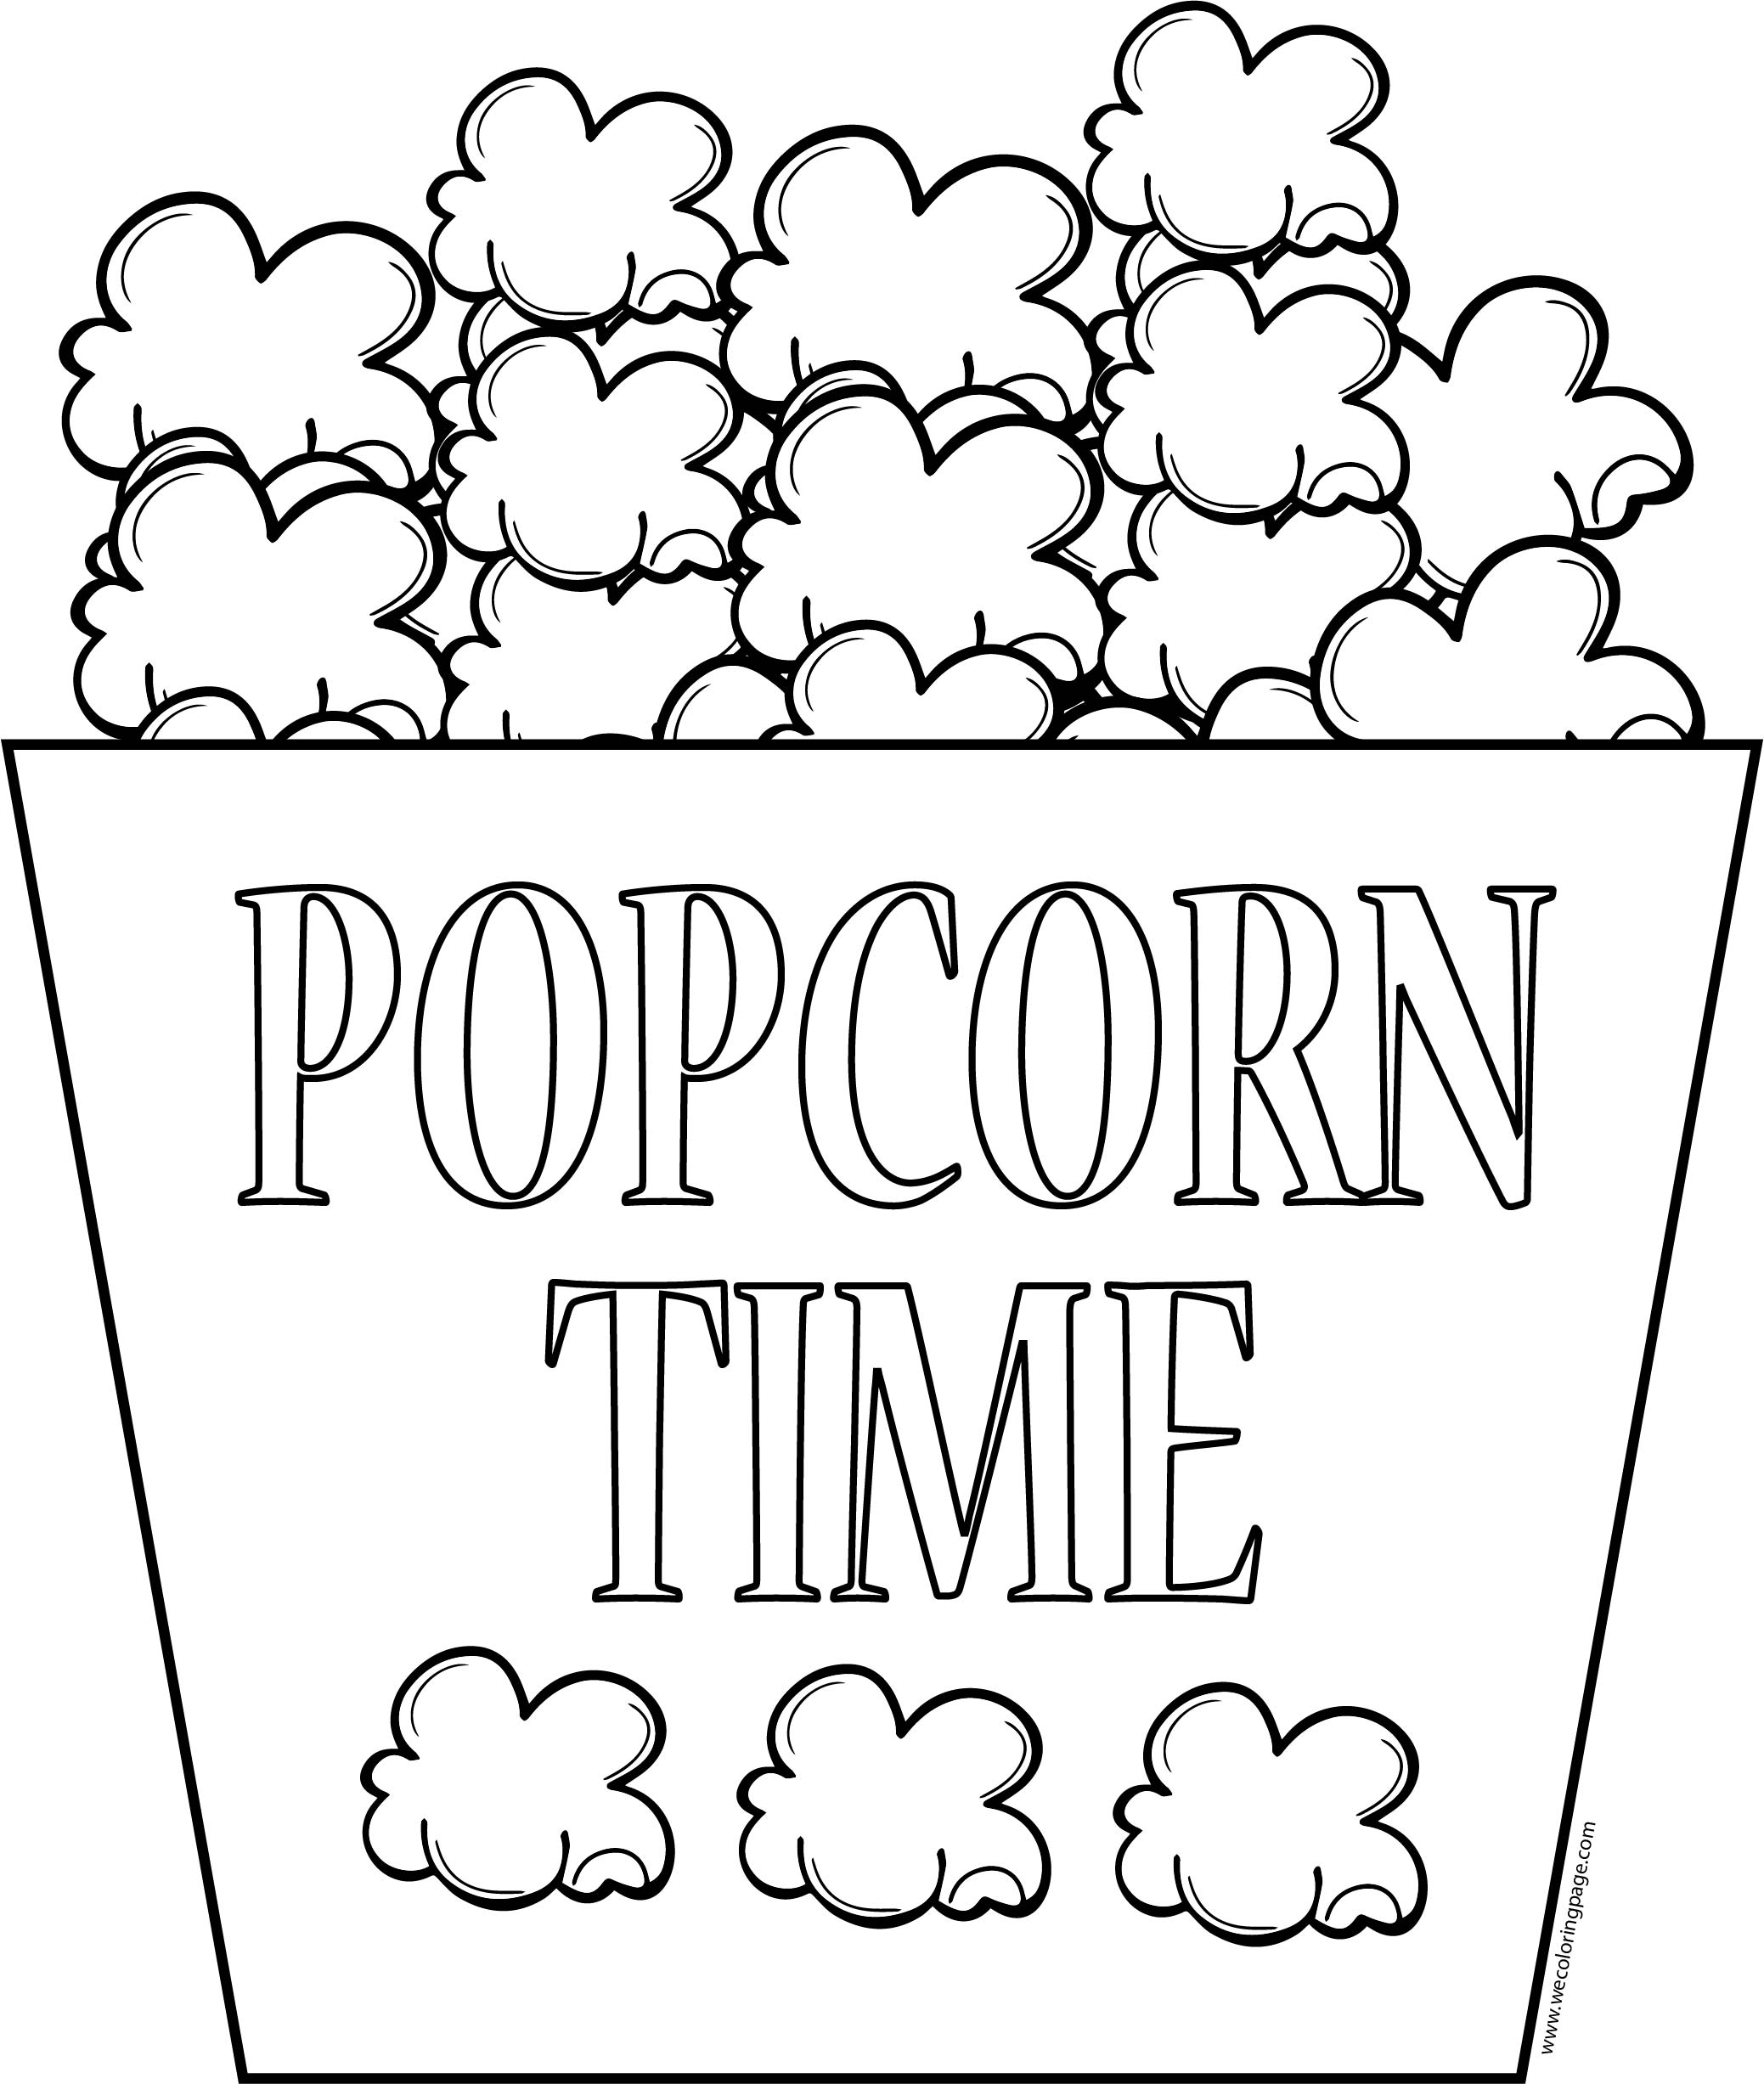 Free Download Popcorn Time Bucket Coloring Page